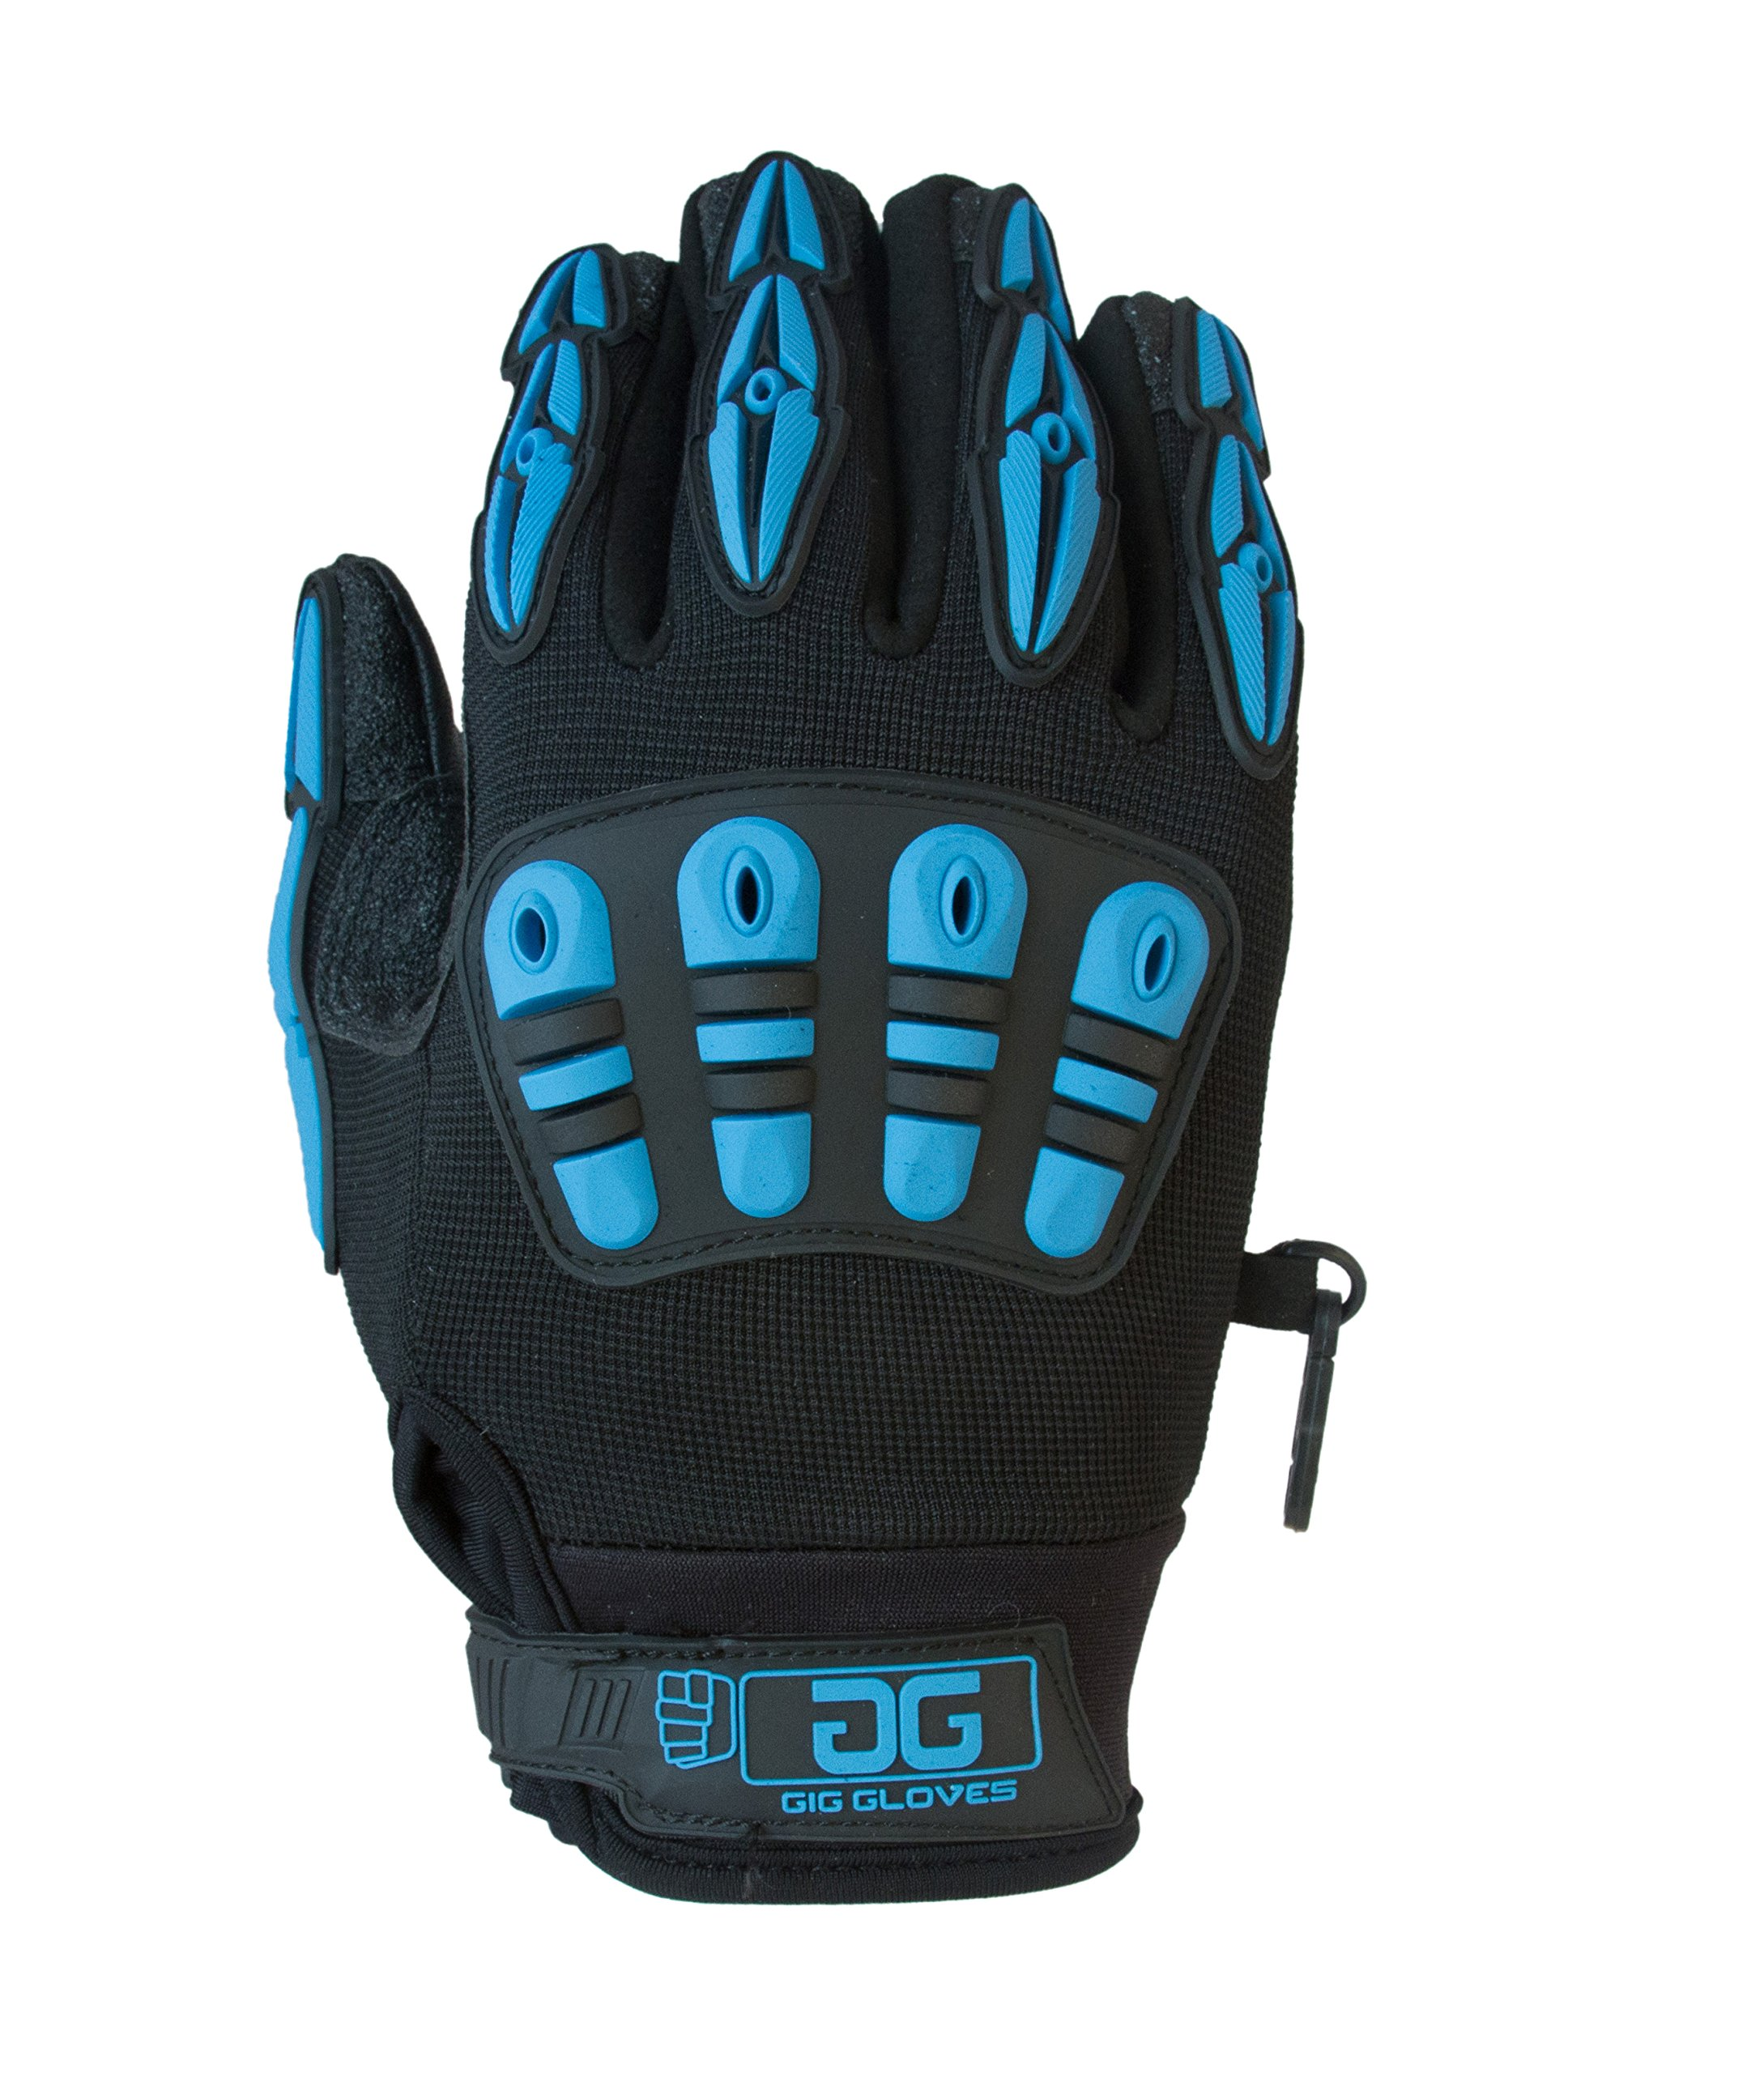 THERMO Gig Gloves Cold Weather Work Gloves for Touring, Gigging, Theater and Live Event & On-Location Production Professionals - Small